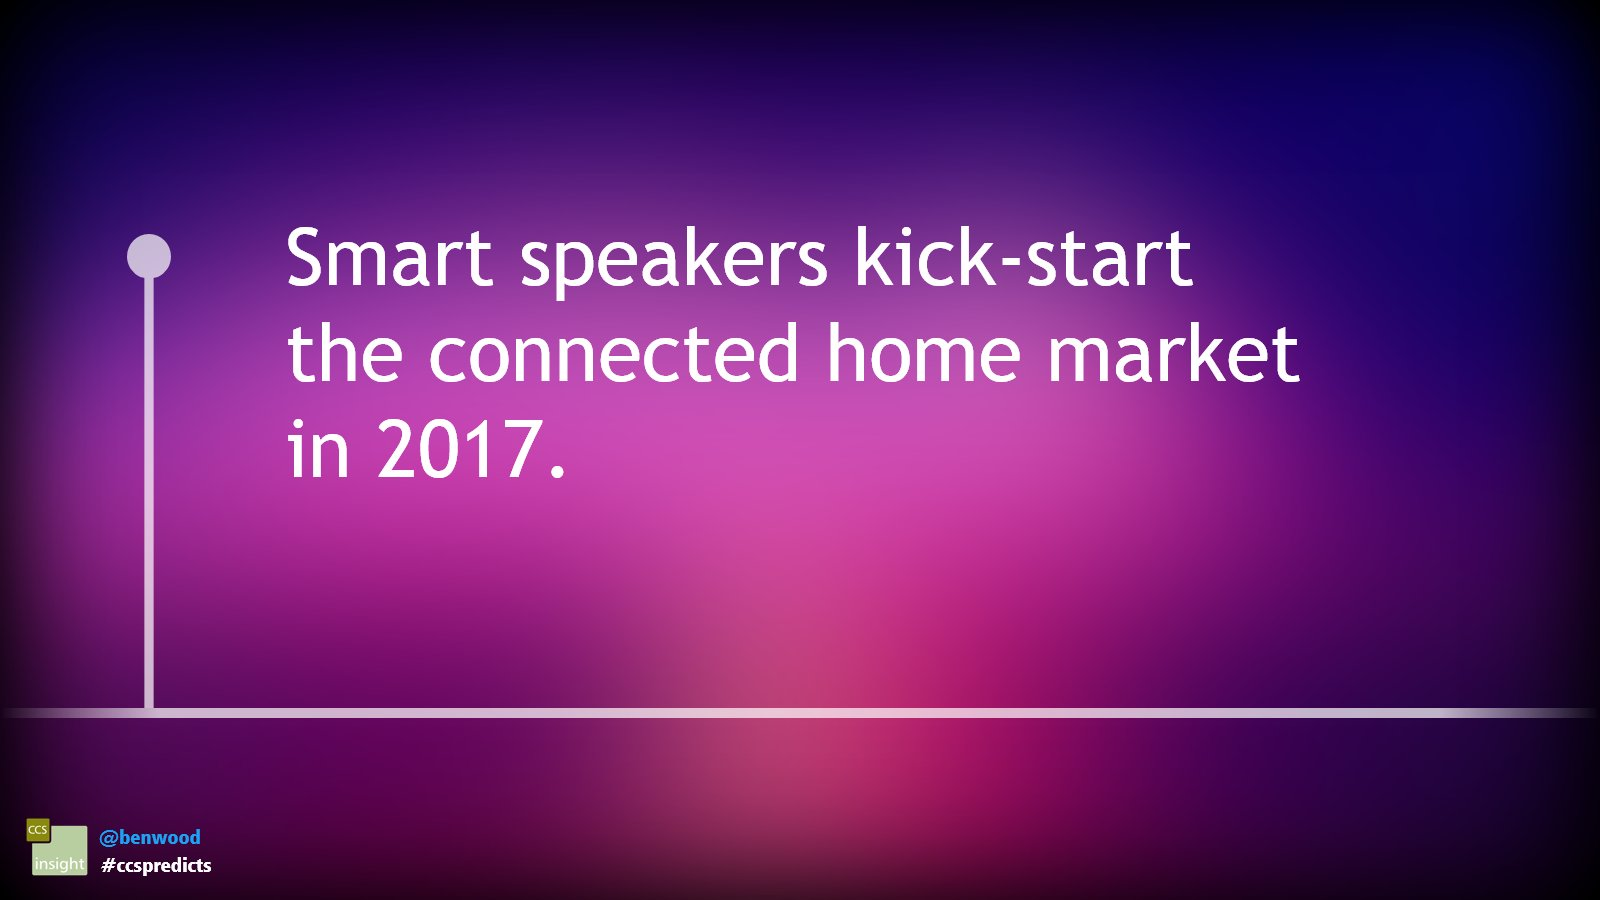 Smart speakers kick-start the connected home market in 2017 #ccspredicts https://t.co/z7yR5mrTR1